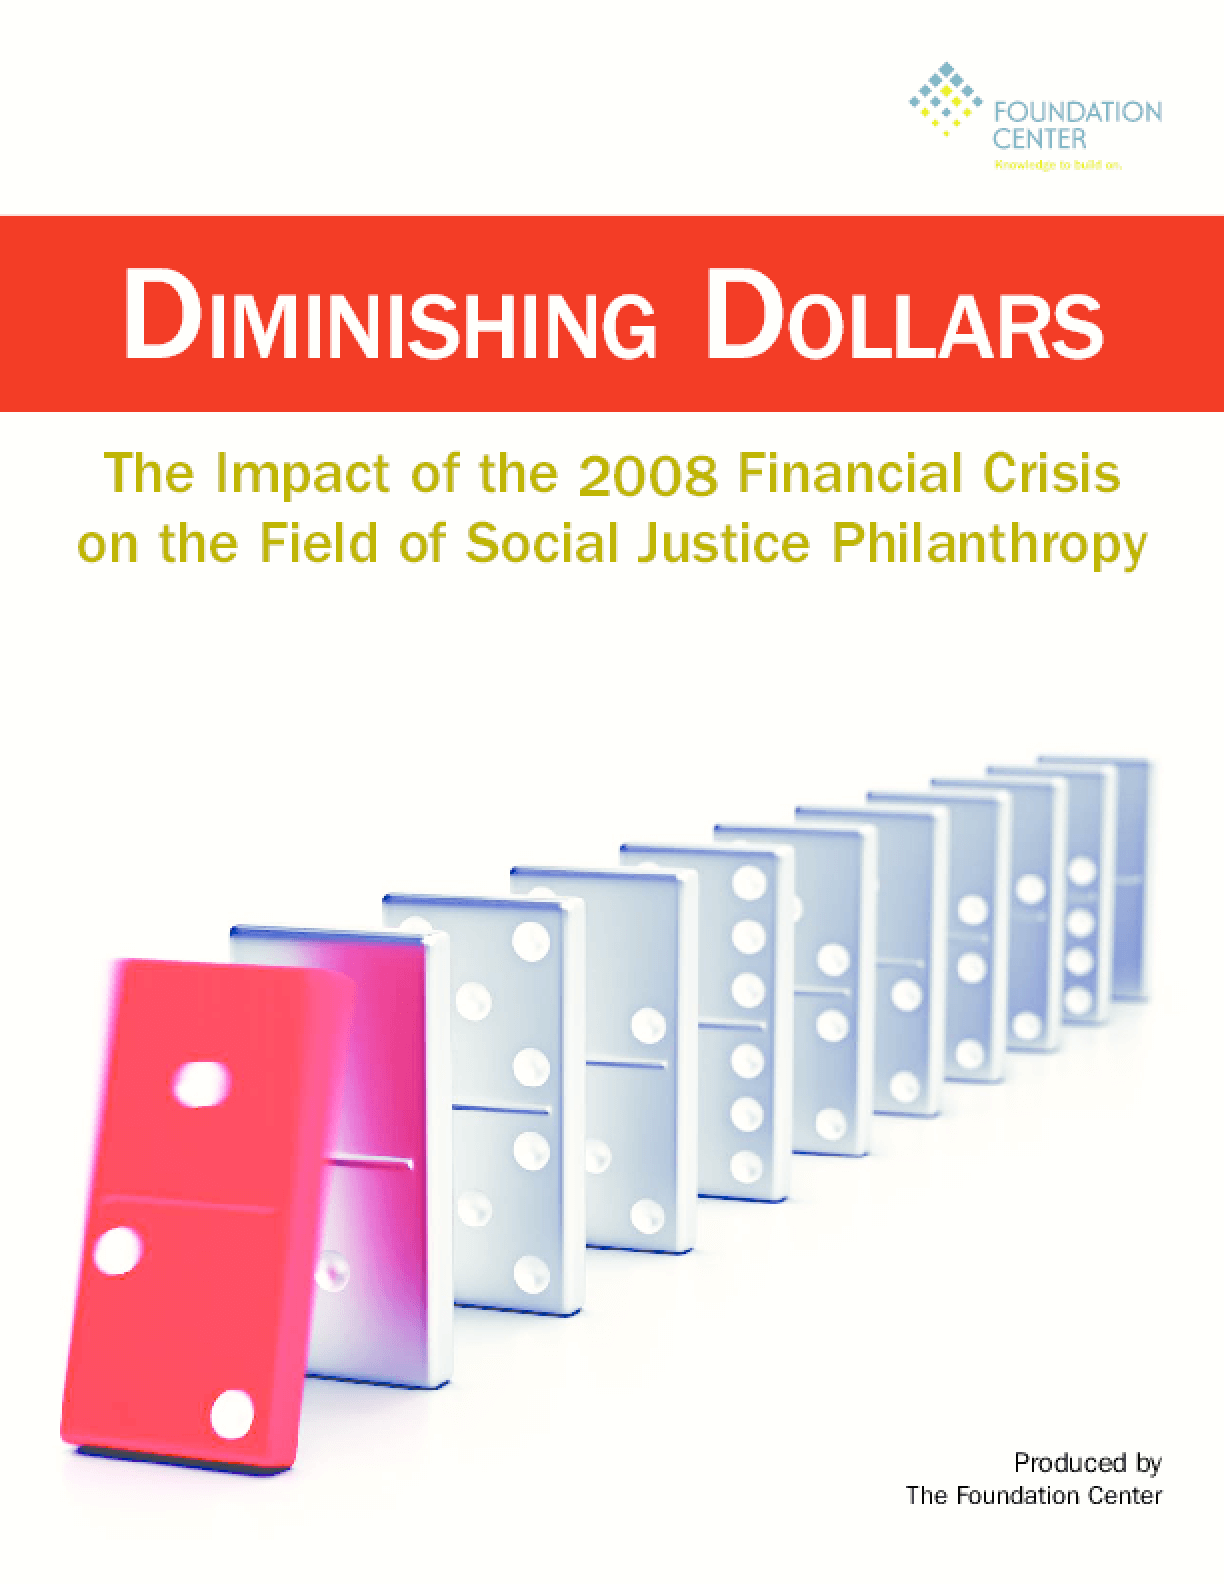 Diminishing Dollars for Social Justice Philanthropy